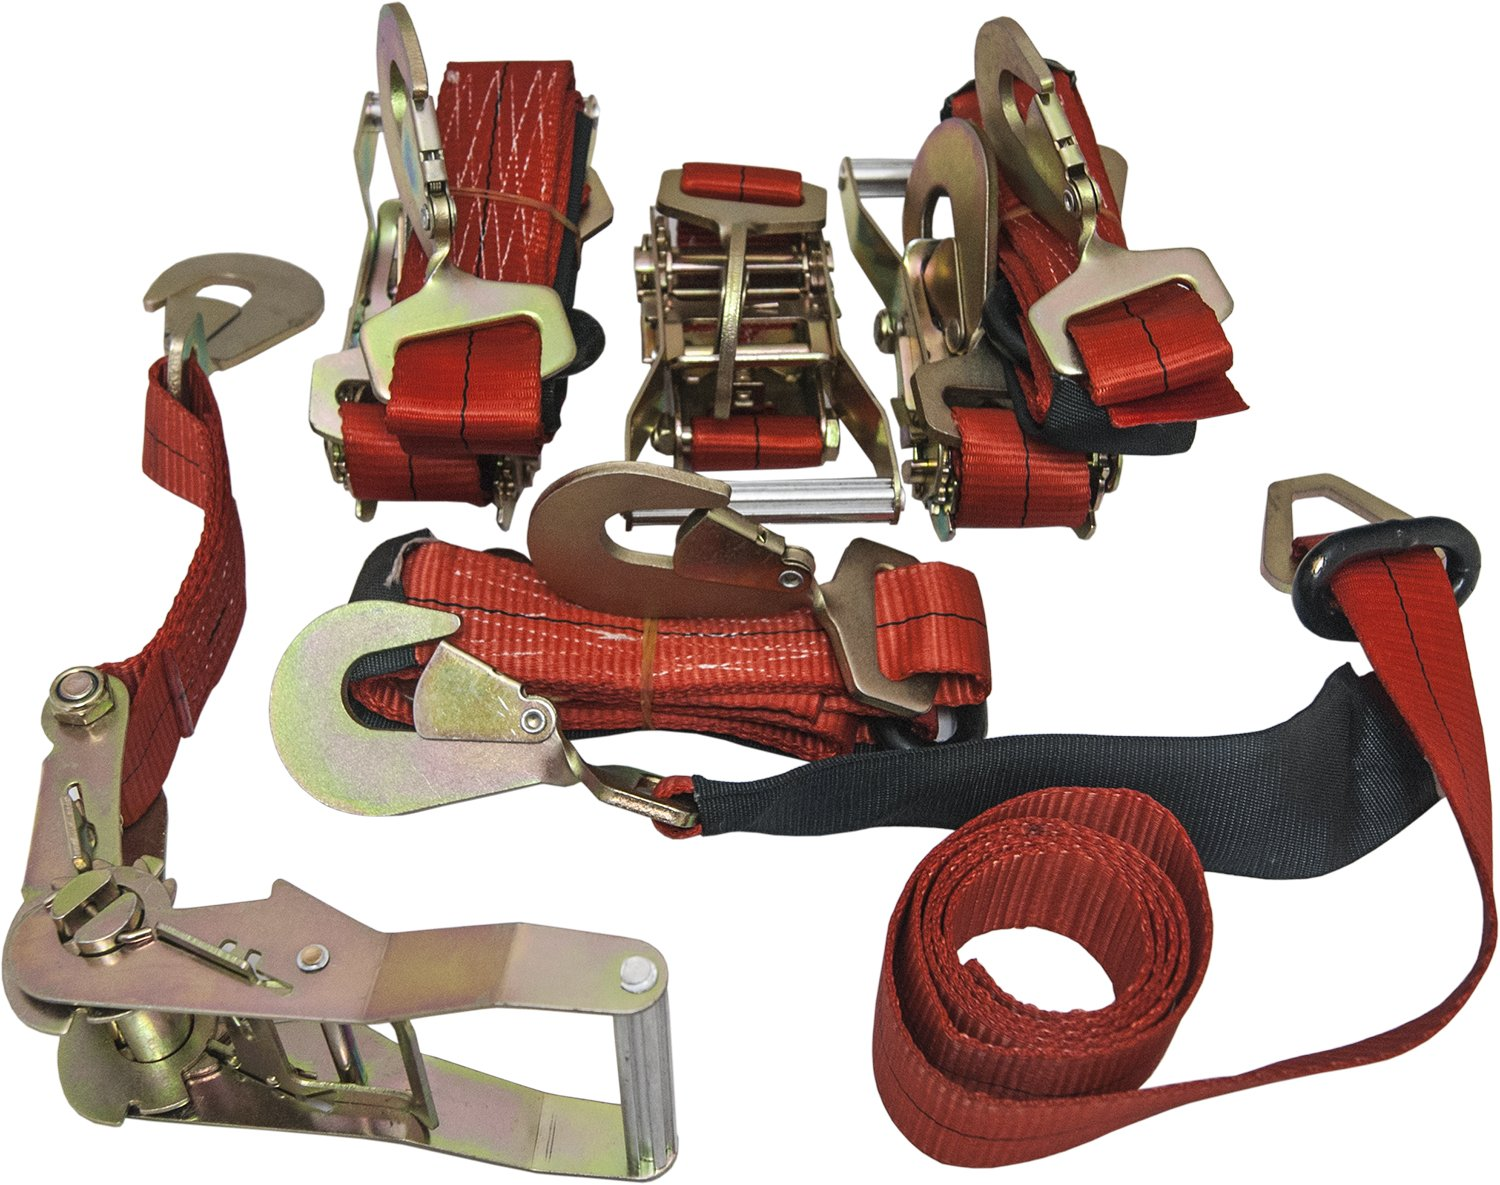 4 Axle Straps Car Carrier Tie Down Straps with Ratchets Tow Straps - Red by GPD